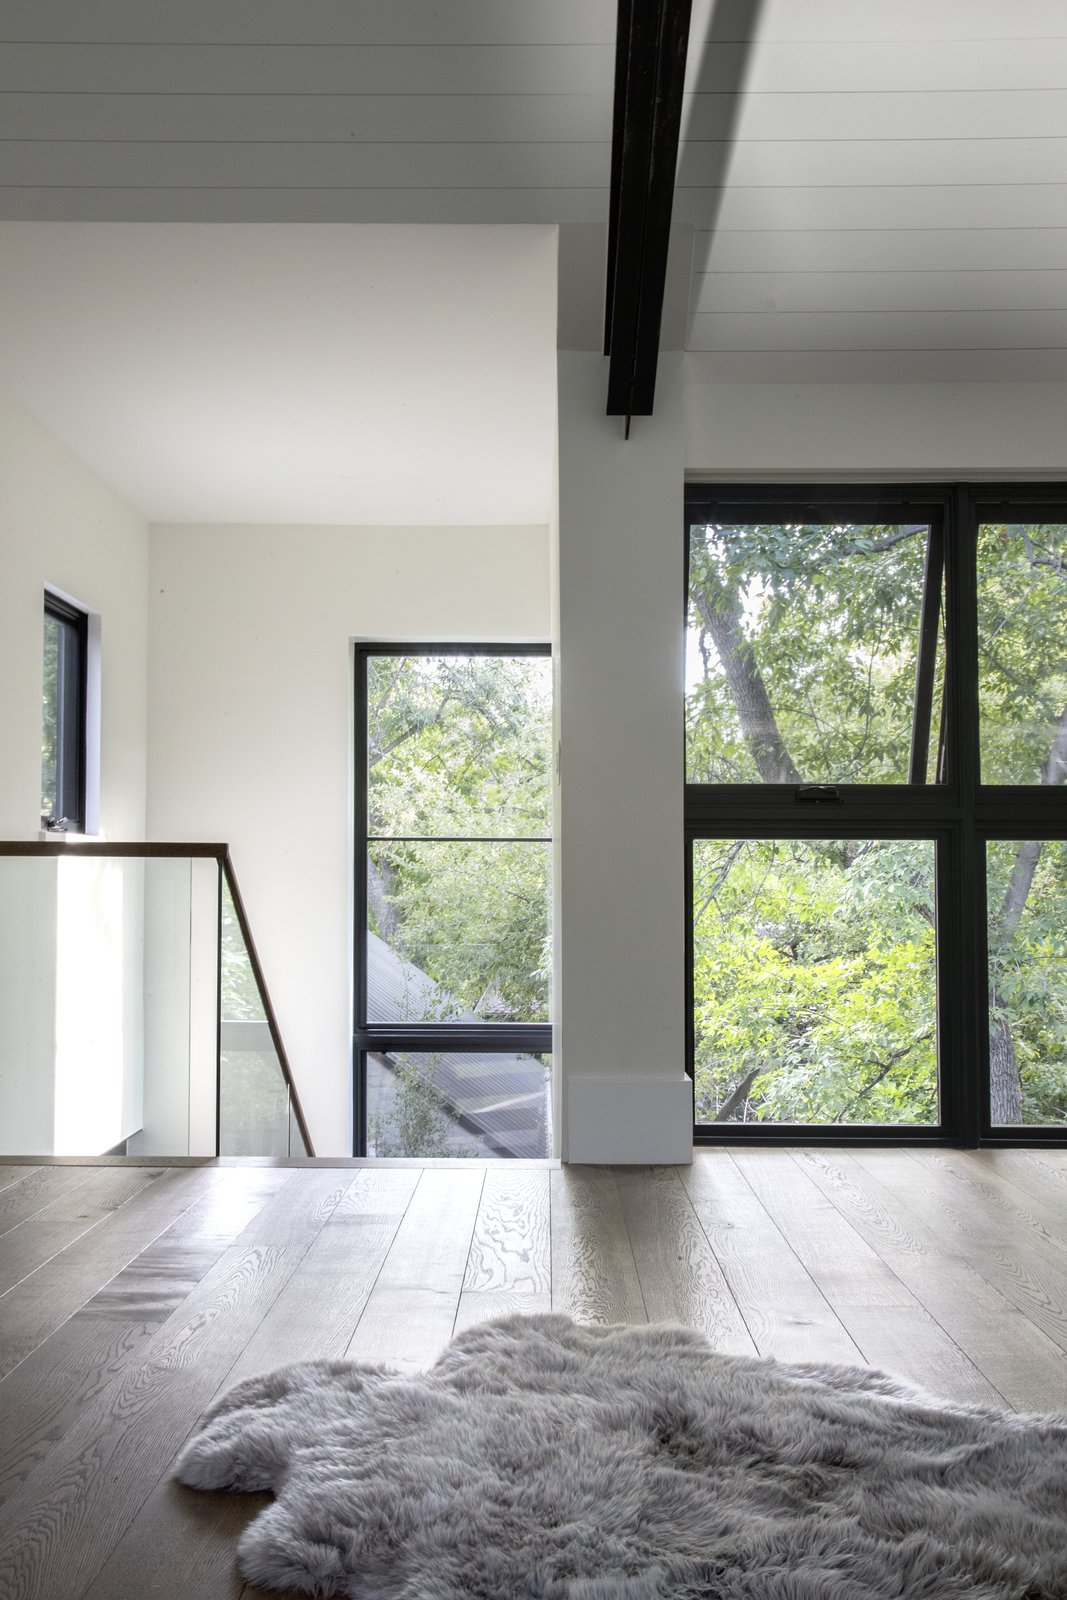 Large glass windows bring in ample amounts of natural light.